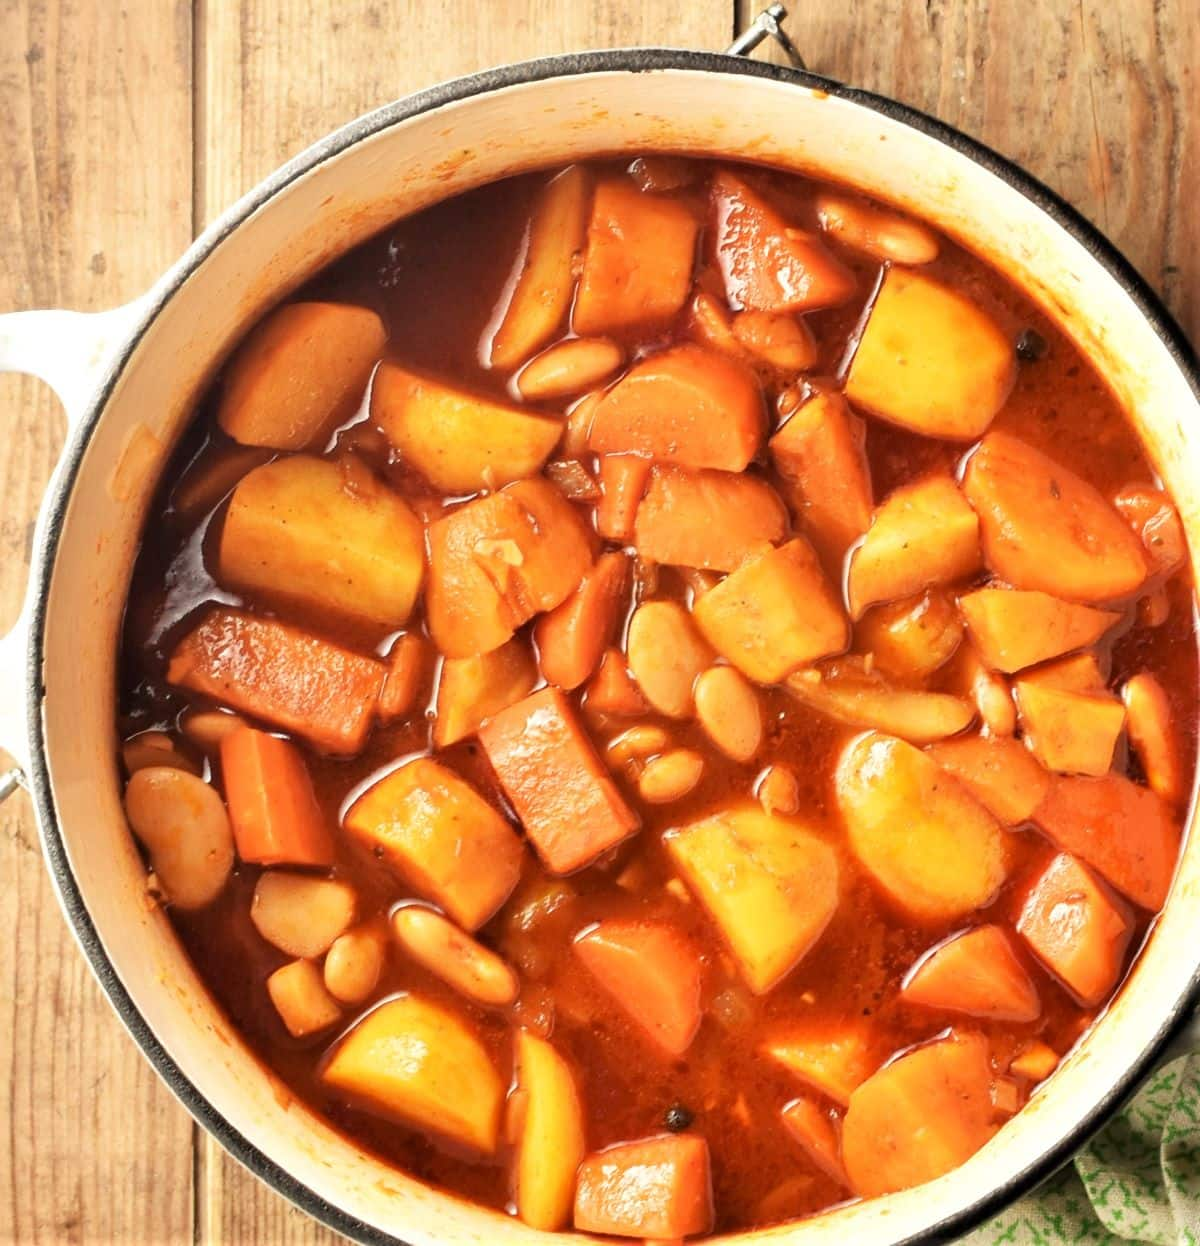 Cooking root vegetable casserole in large pot.